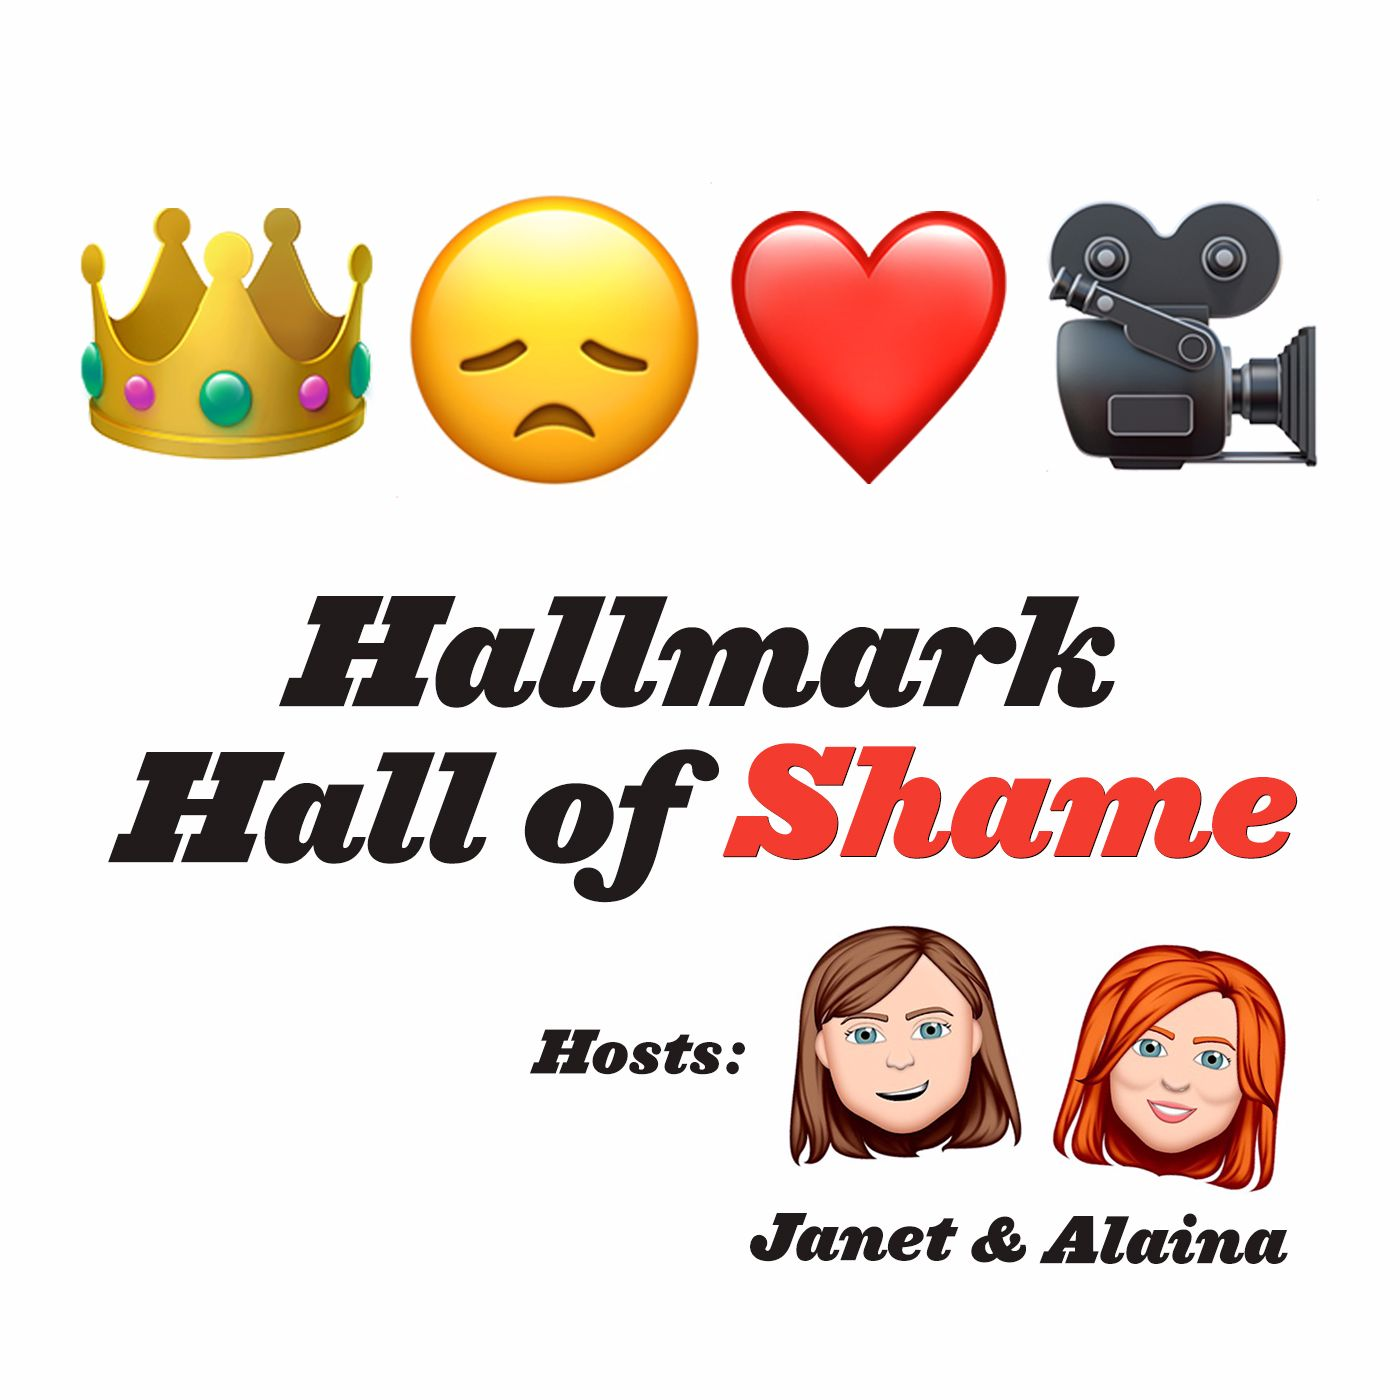 Hallmark Hall Of Shame podcast